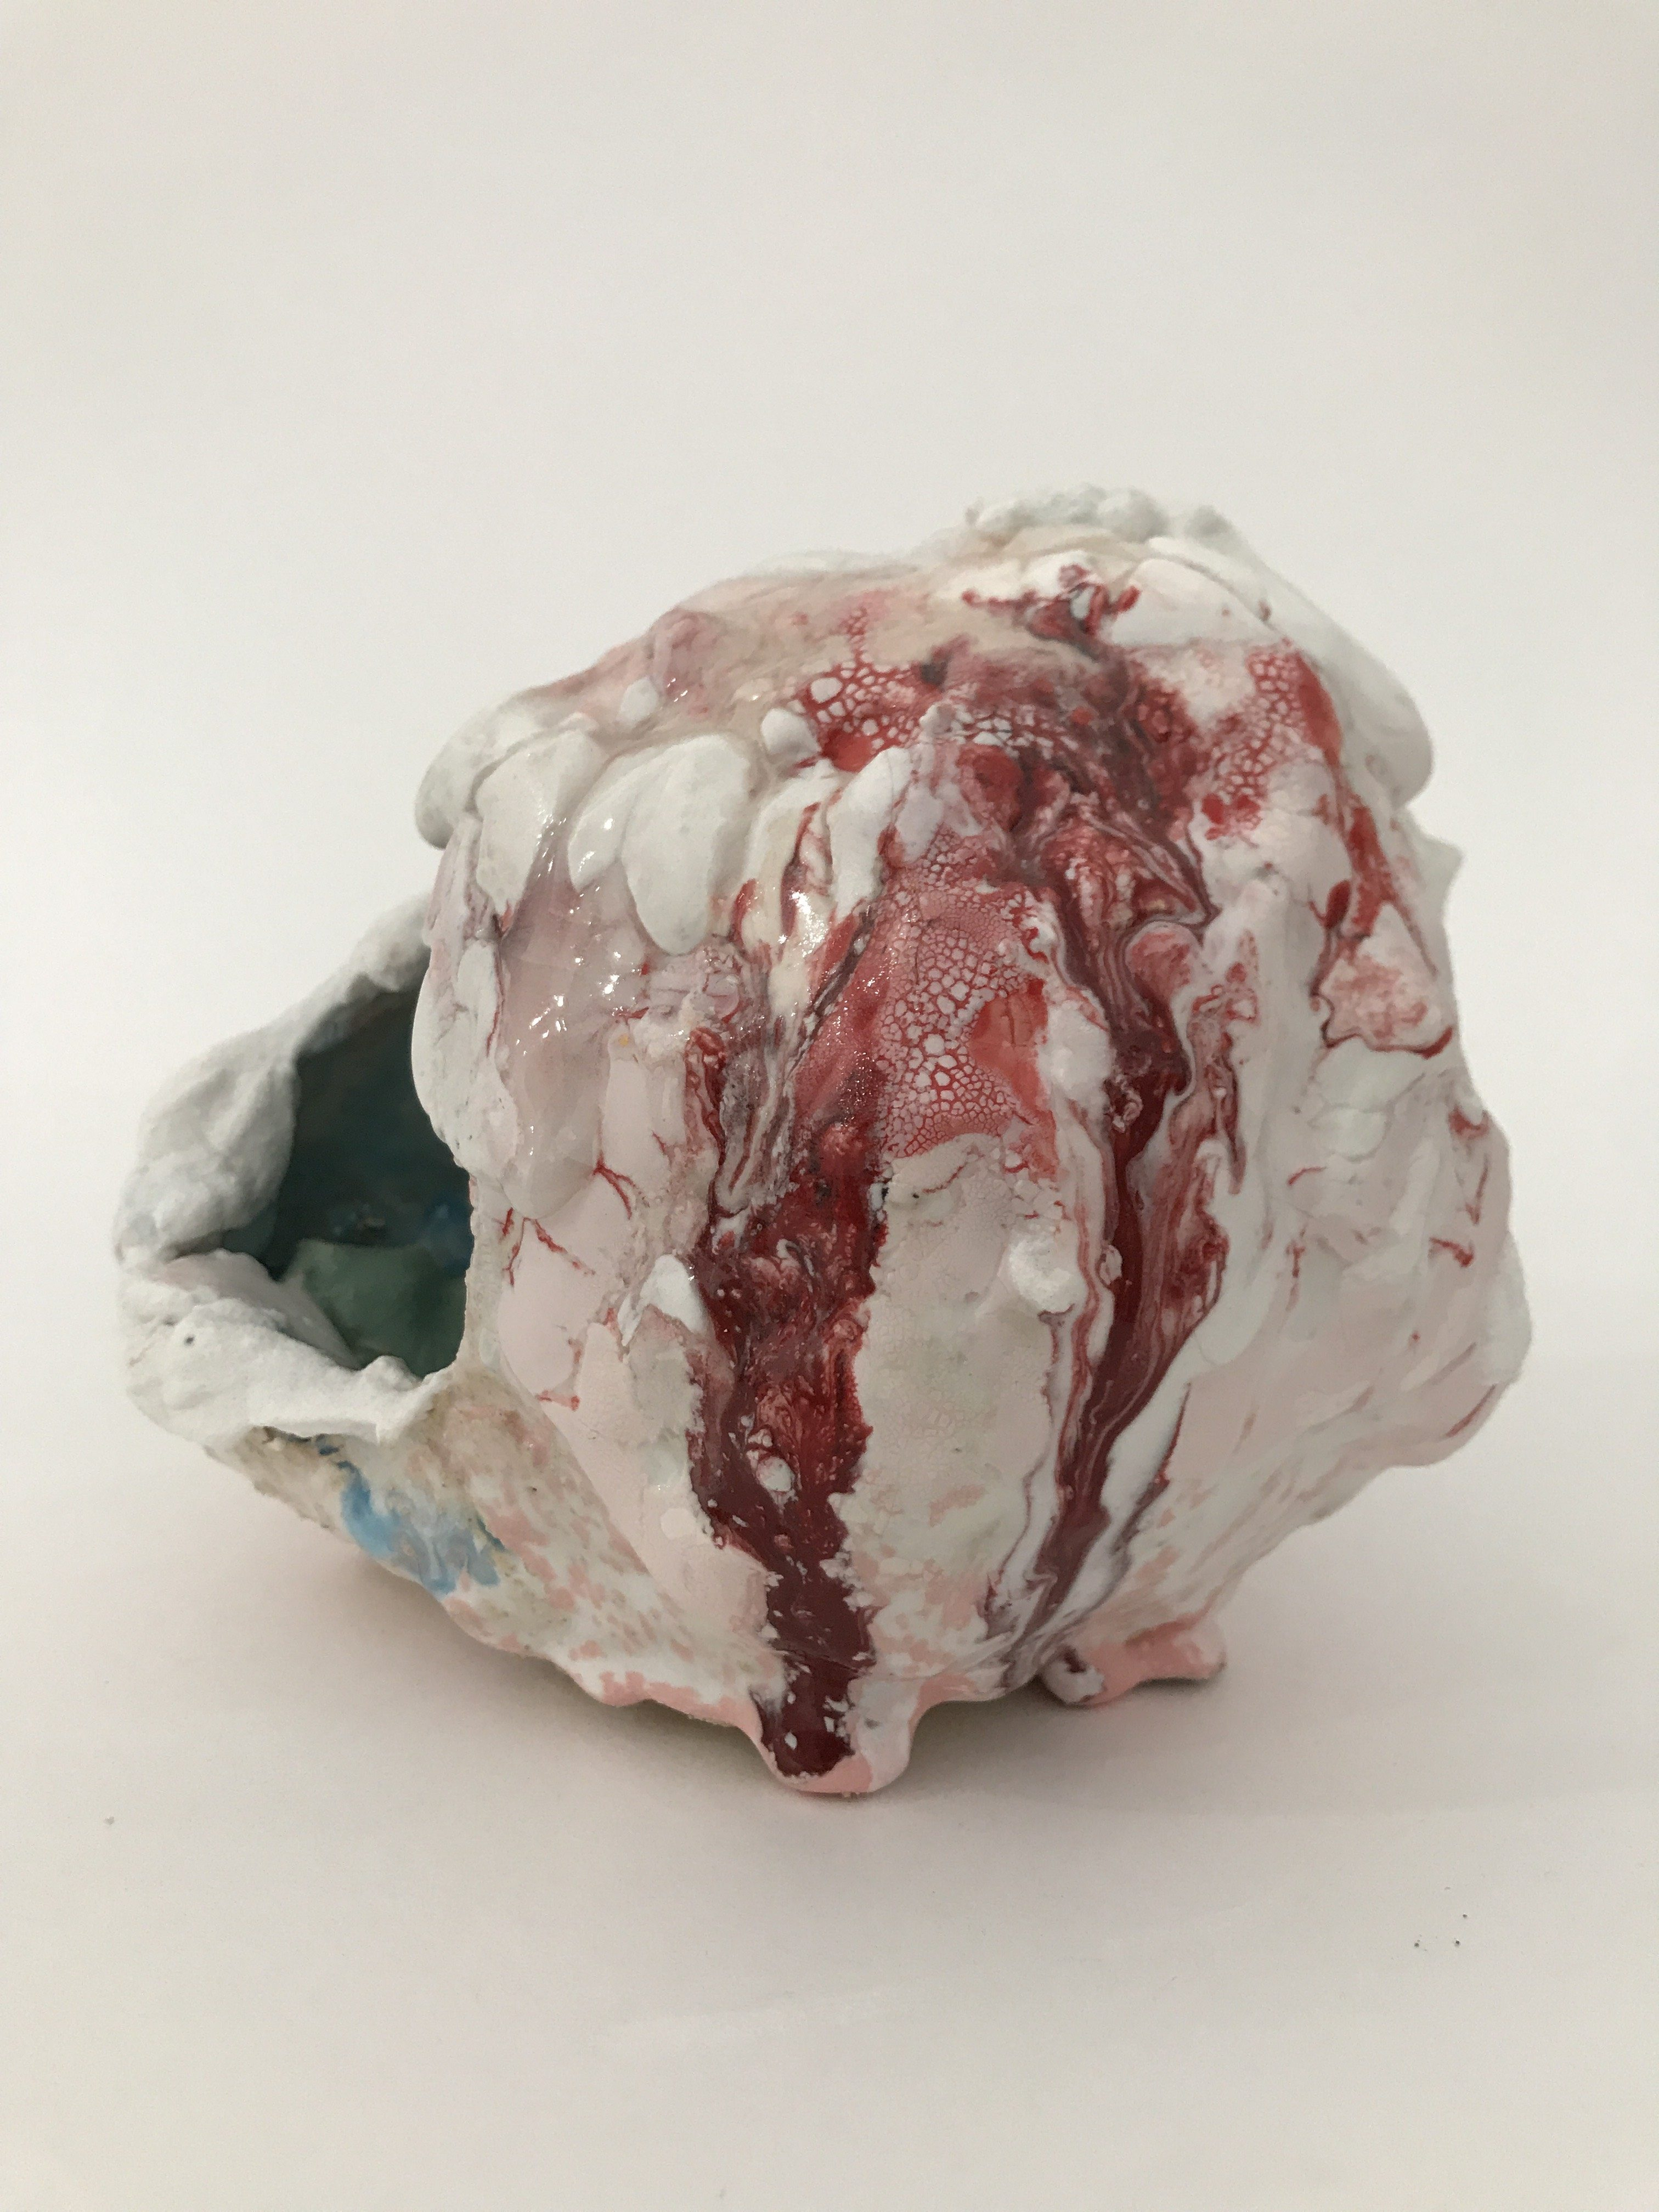 Brian Rochefort. <em>Skull (red, white, black)</em>,  2017. Terra cotta, glaze and glass fragments, 7 x 5 x 7 inches (17.8 x 12.7 x 17.8 cm)